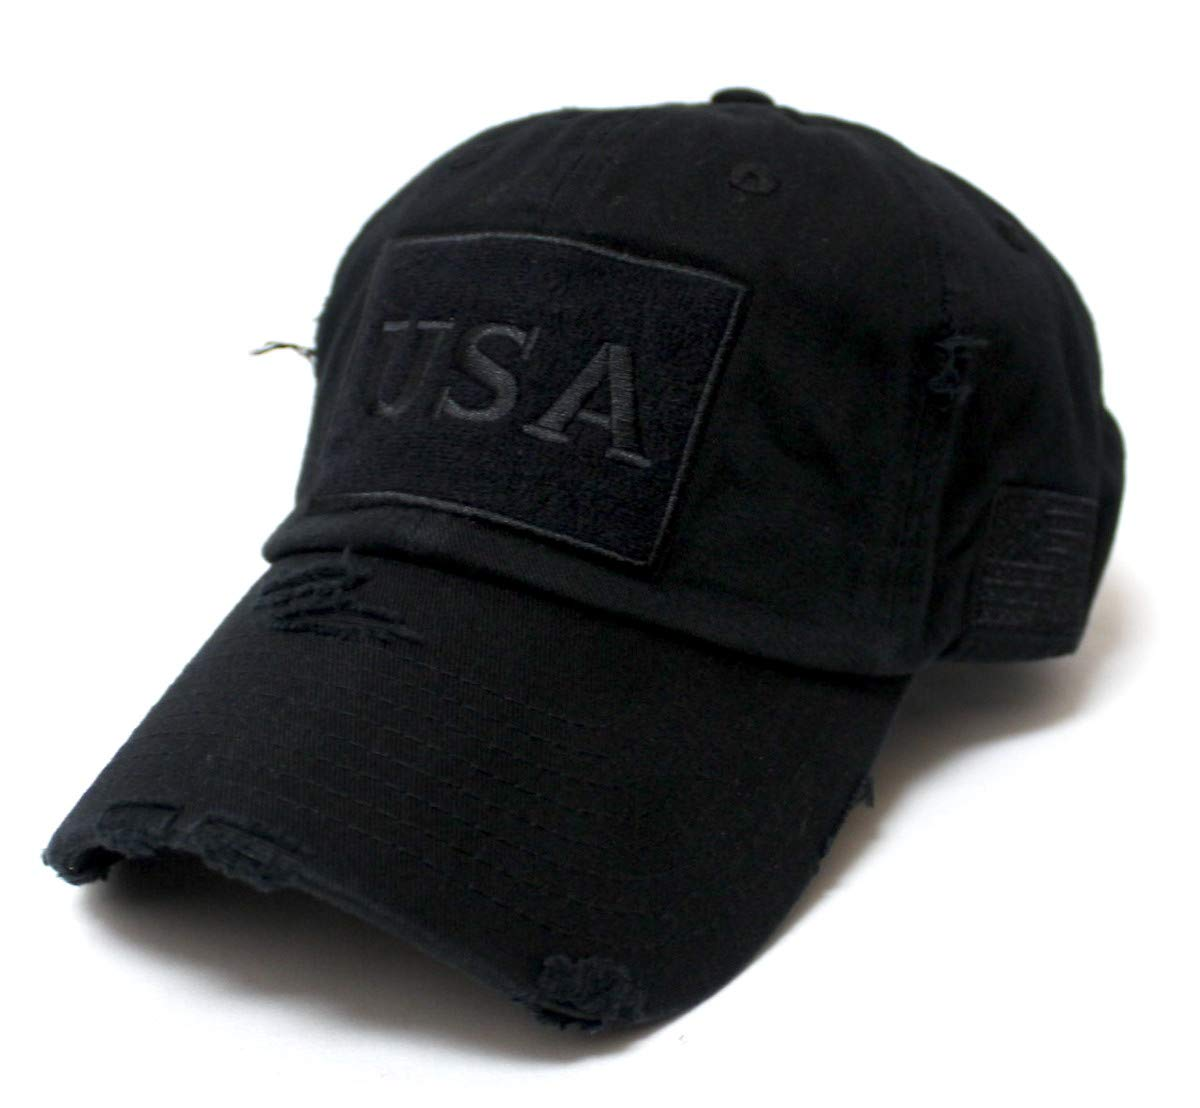 CAPS 'N VINTAGE Distressed USA American Flag Monogram Embroidery Adjustable Hat, Washed Black - Caps 'N Vintage